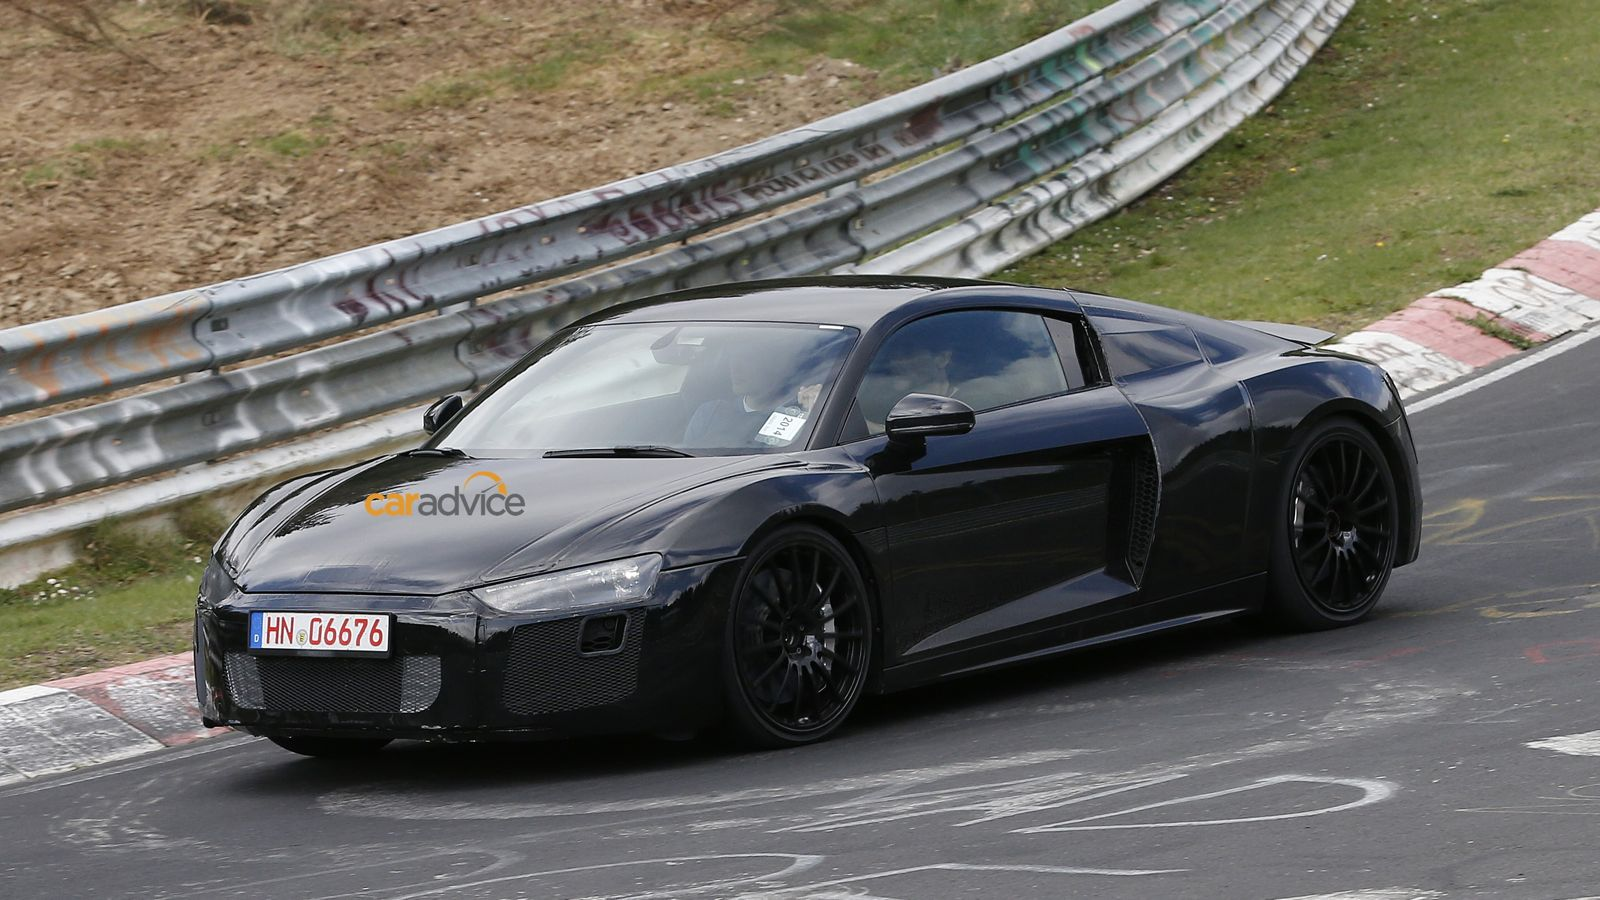 audi r8 2015 black. 2015 audi r8 spied with less camouflage black